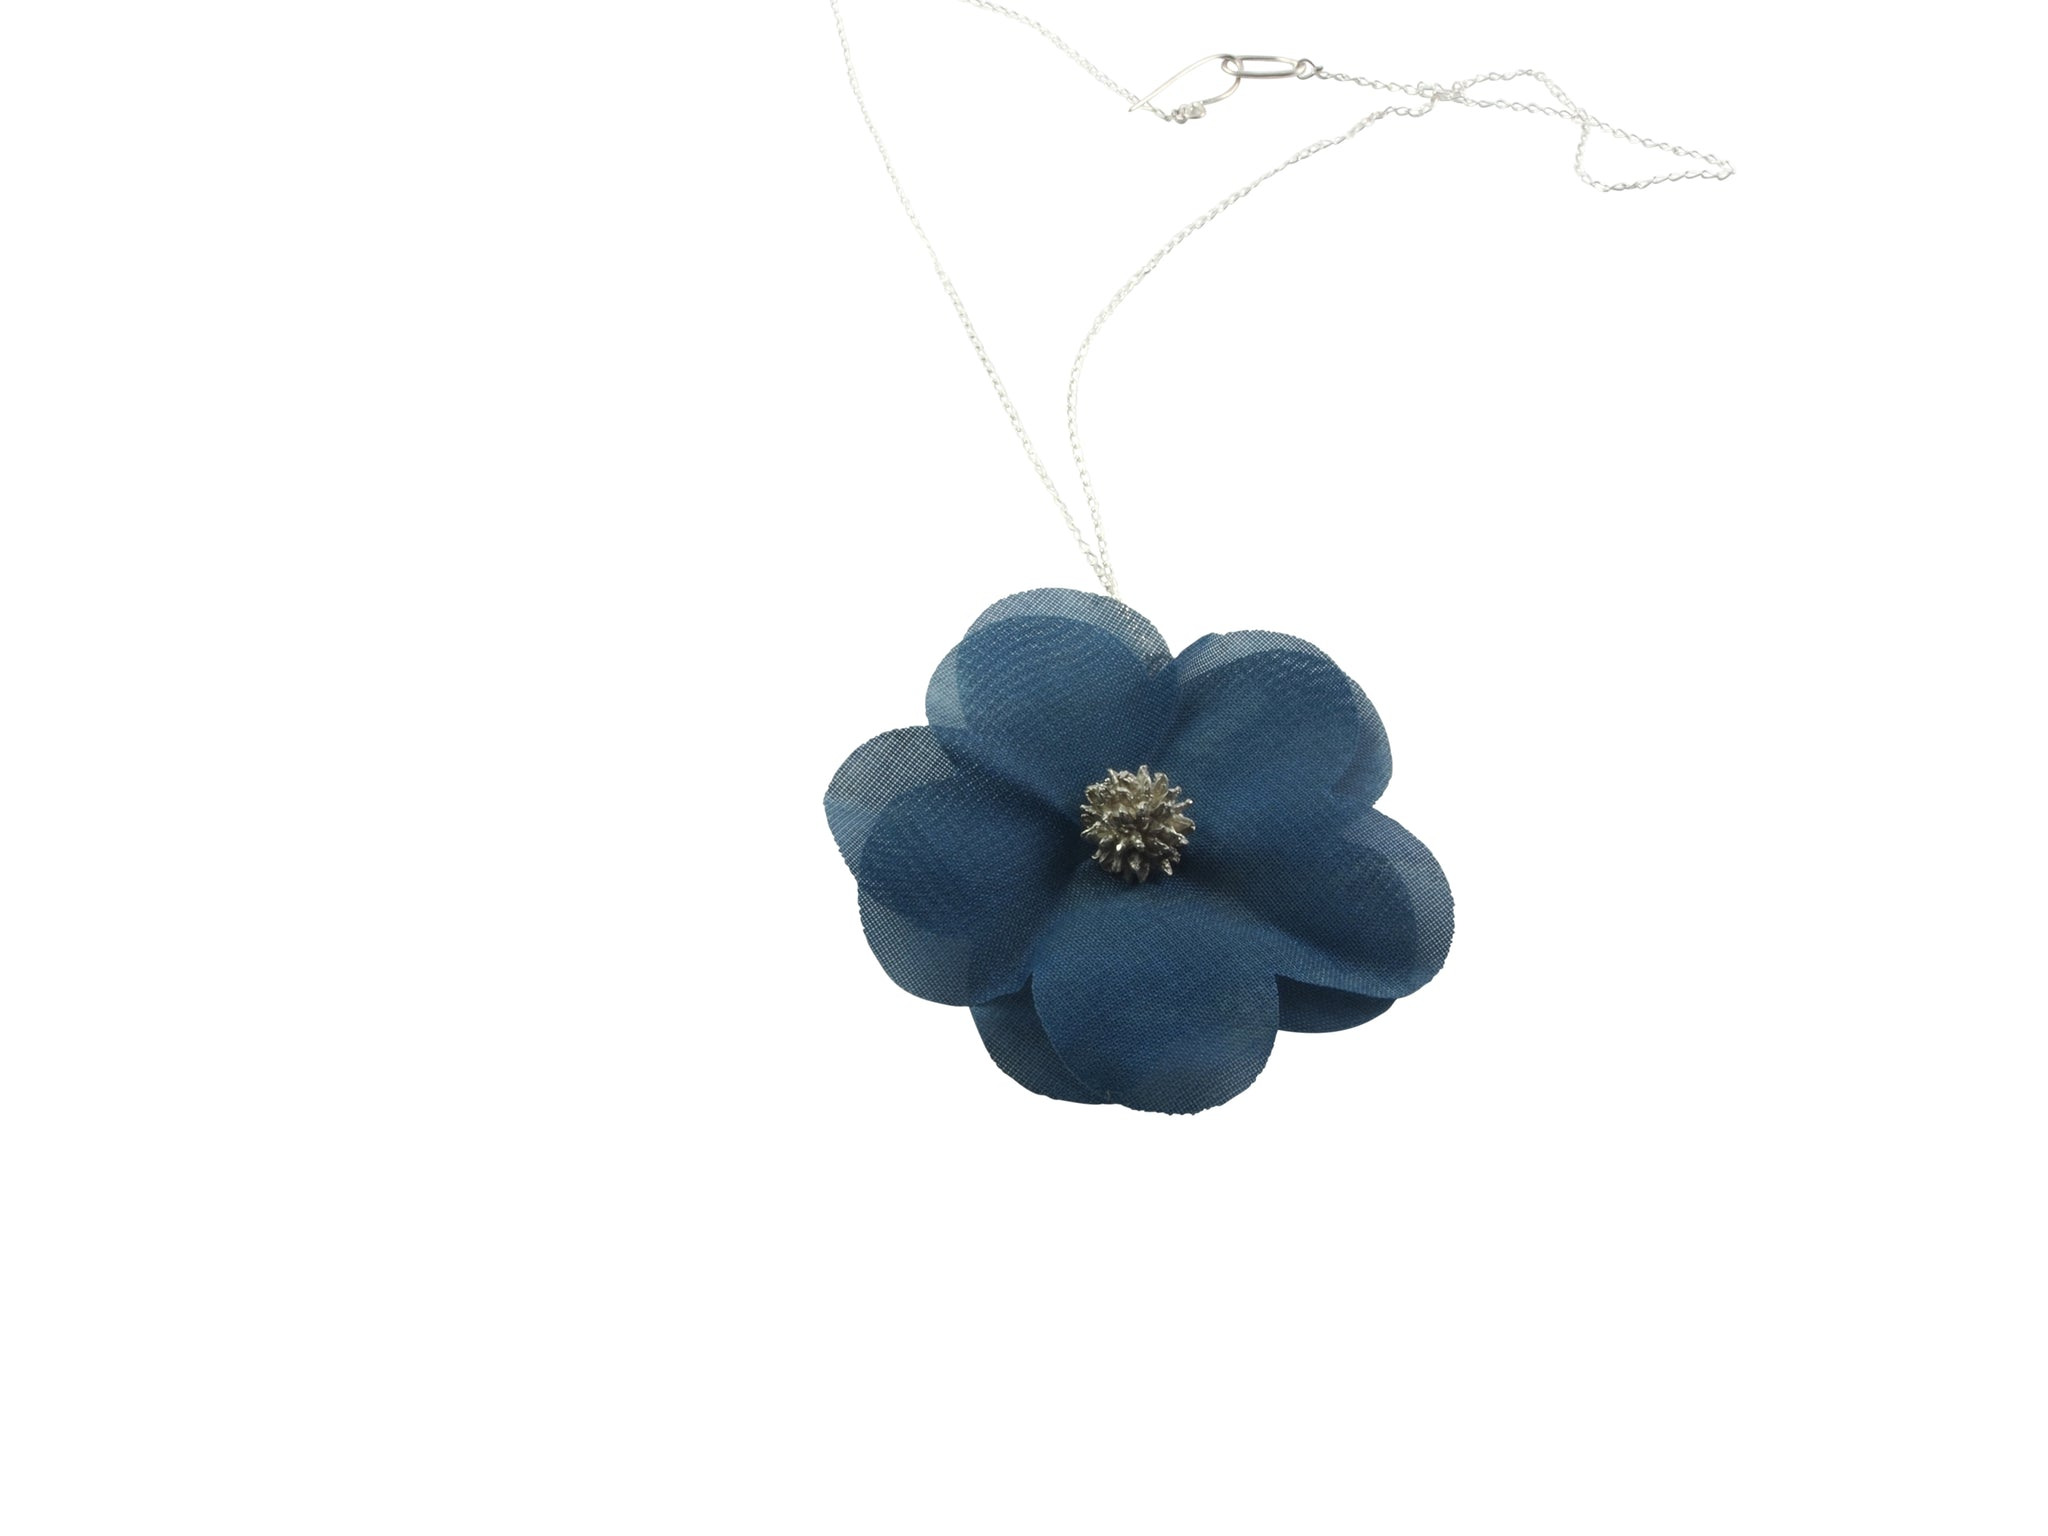 Winter rose necklaces